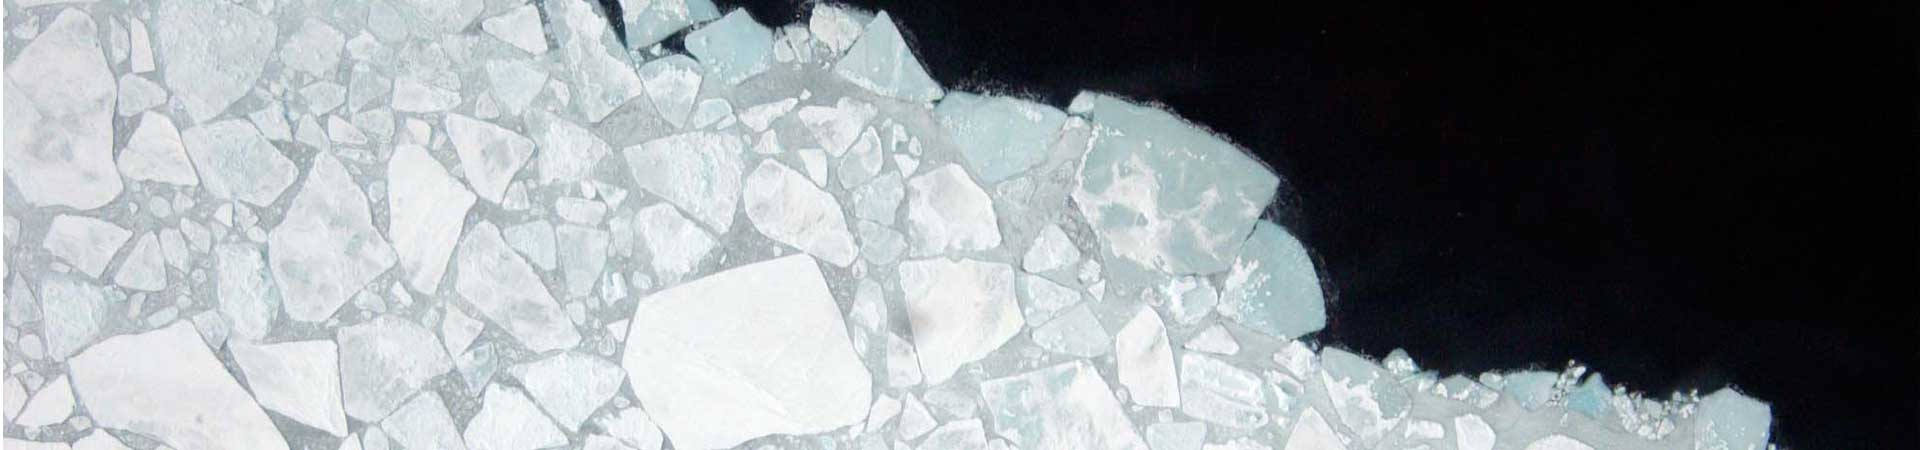 Drone footage of the margins of Arctic sea ice with water appearing black